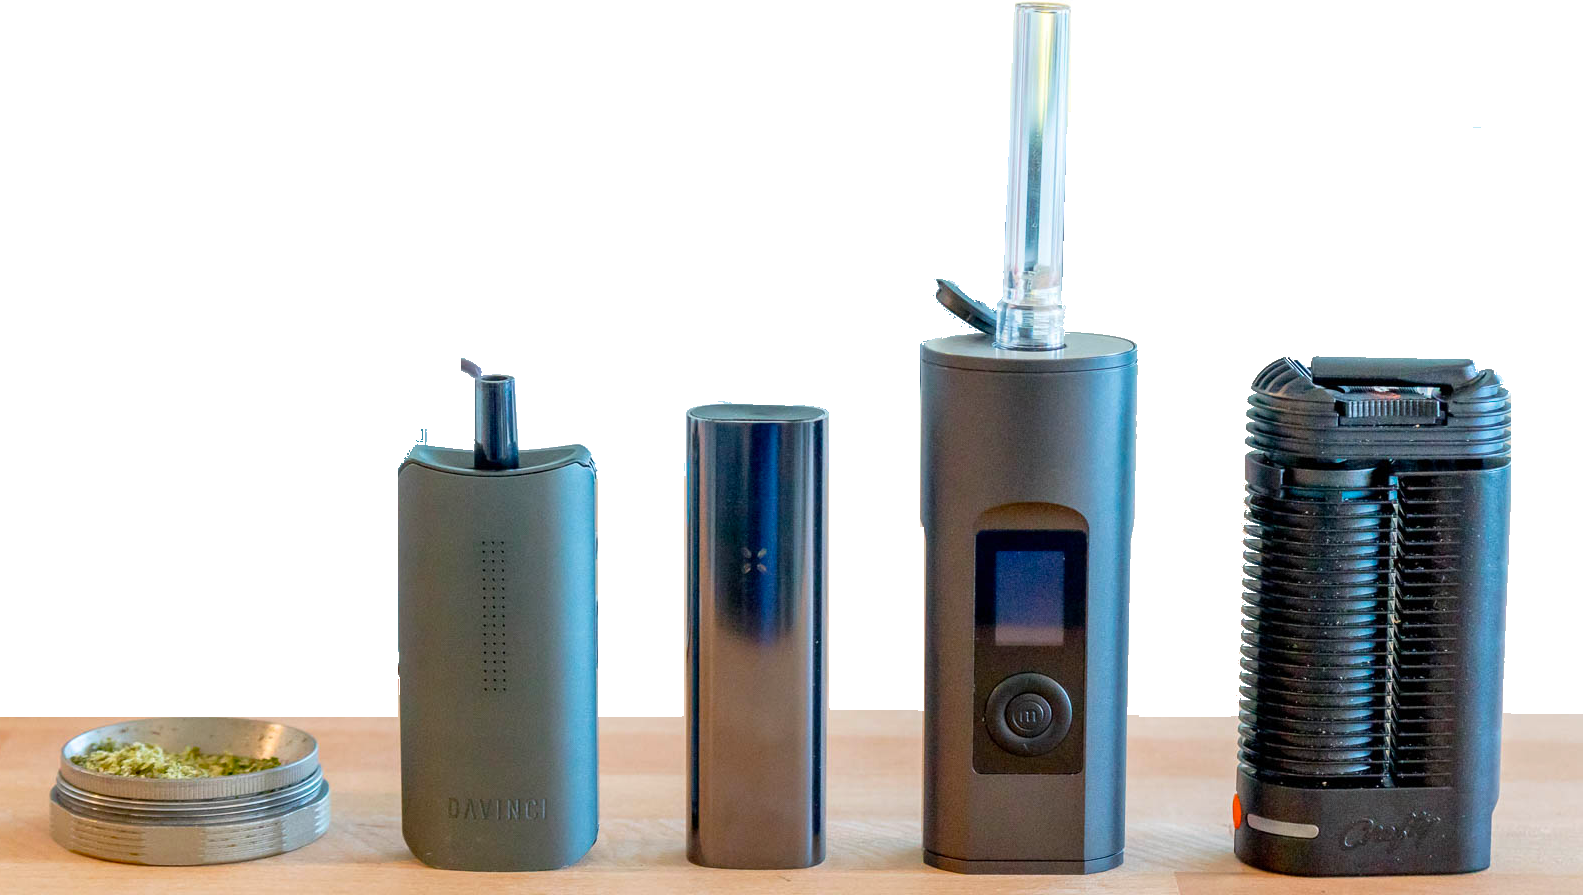 Vapourizer Image with Solo 2 Arizer, Pax, Crafty and Da Vinchi in one image